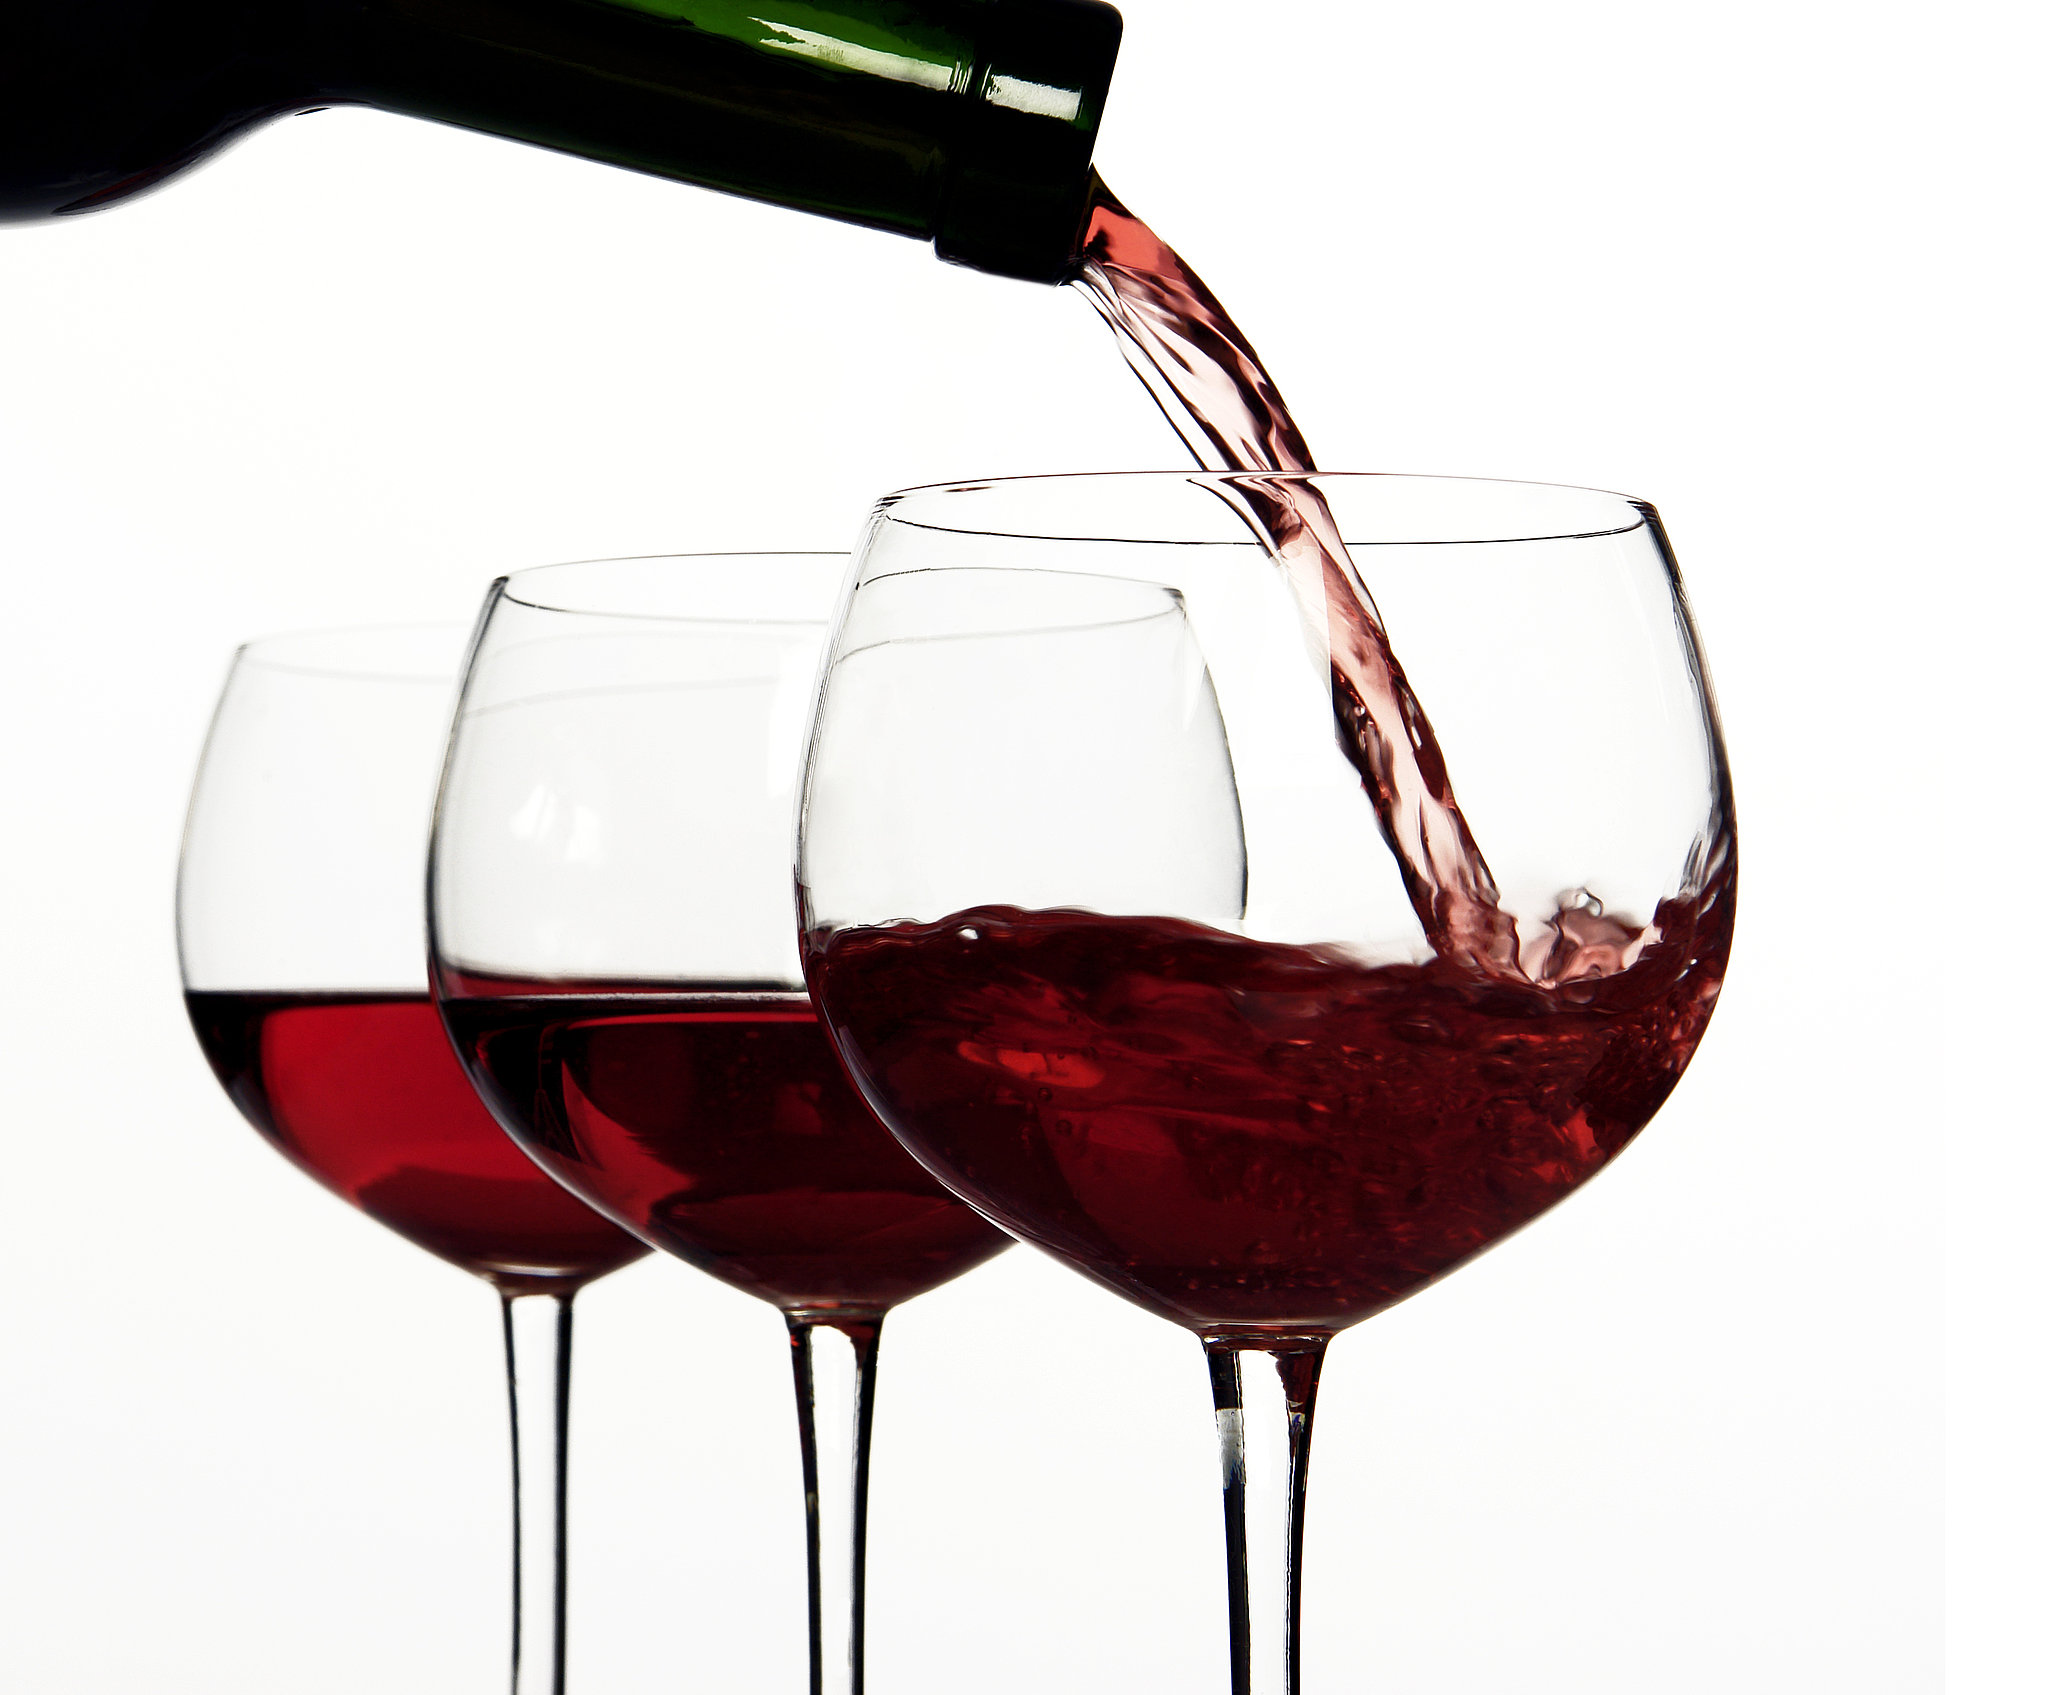 Red wine   Red wine may be the sexiest alcoholic beverage out there, but scientific proof of its aphrodisiac properties isn't quite verified. However, sipping a velvety smooth merlot -- in moderation -- can increase blood flow, provide a warm, tingly feeling, relax your body and reduce your inhibitions, turning on the sexiness. But remember, overdoing alcohol intake may thwart your performance in the bedroom!   Verdict:  Red wine may reduce your inhibitions, but there's no evidence of it boosting your libido.